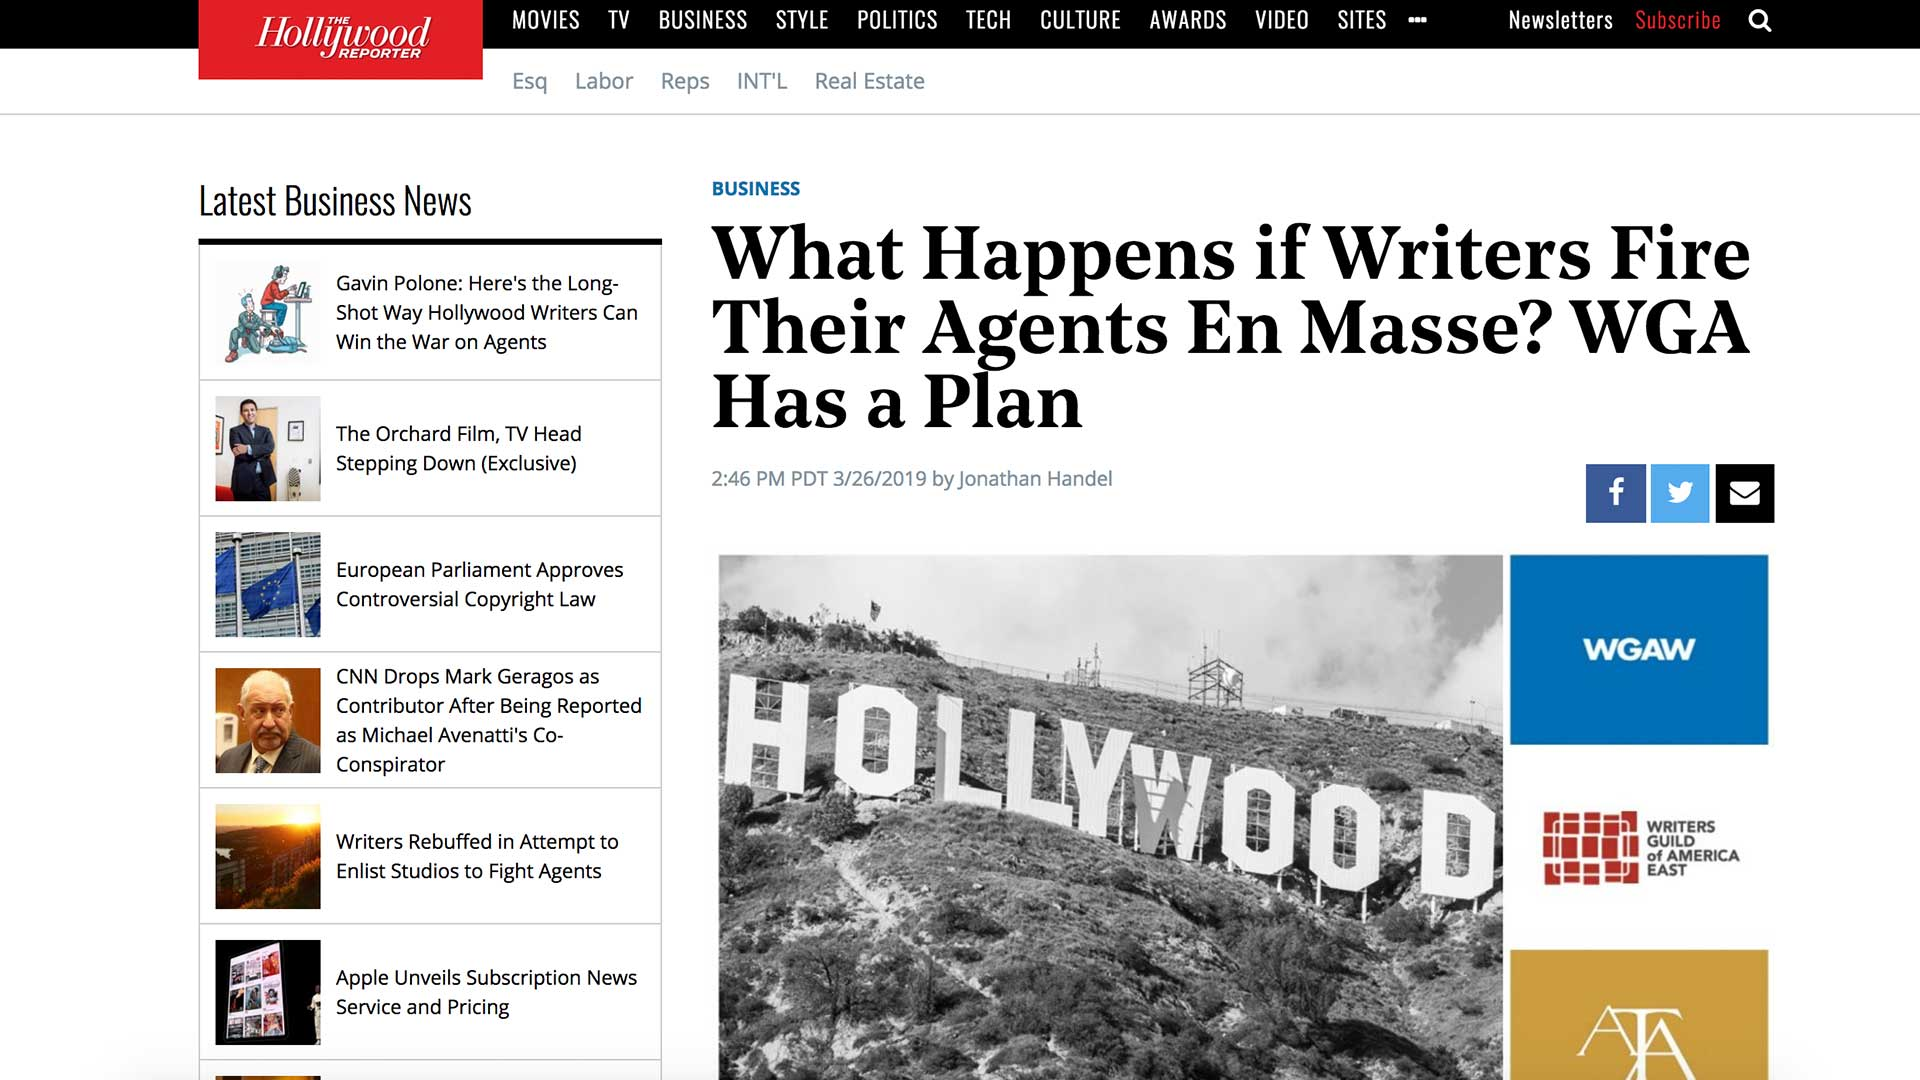 Fairness Rocks News What Happens if Writers Fire Their Agents En Masse? WGA Has a Plan